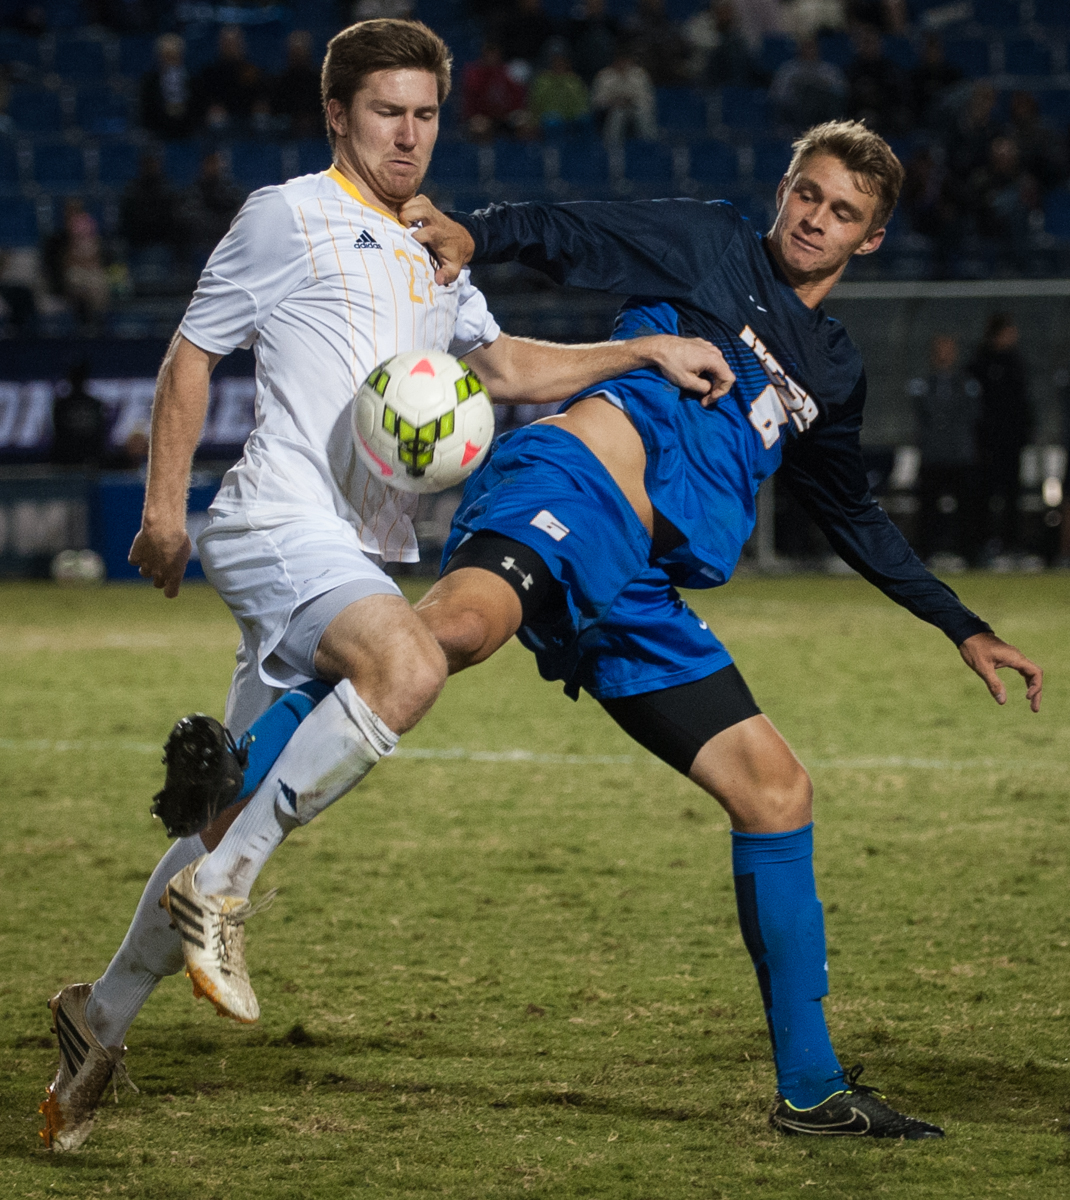 Defender Jack Birkenbeuel (left) and Nick DePuy struggle for the ball during the first half of the match. (Kenneth Song/Daily Nexus)